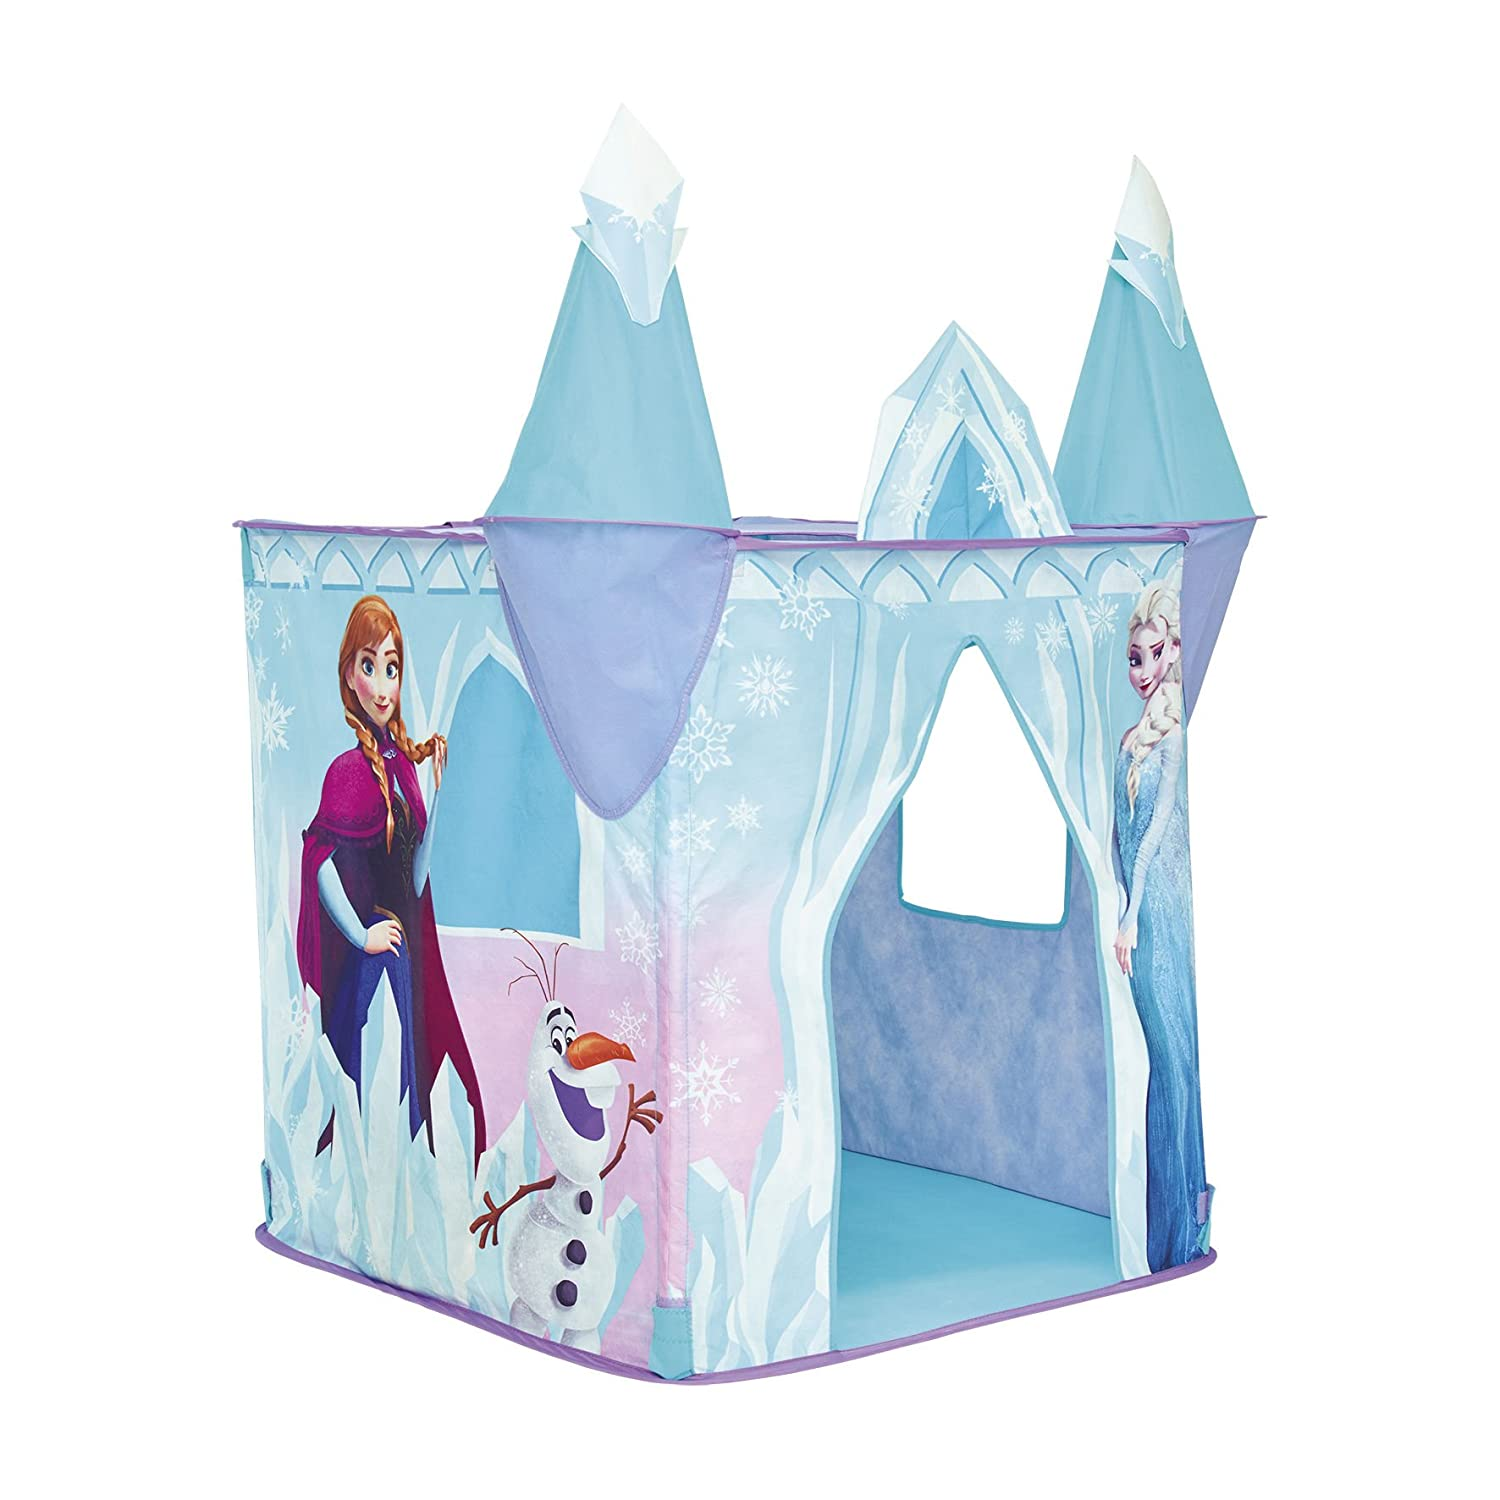 Disney Frozen 167FZN01E Castle Playhouse - Pop Up Role Play Tent Disney Princess Amazon.co.uk Toys u0026 Games  sc 1 st  Amazon UK & Disney Frozen 167FZN01E Castle Playhouse - Pop Up Role Play Tent ...